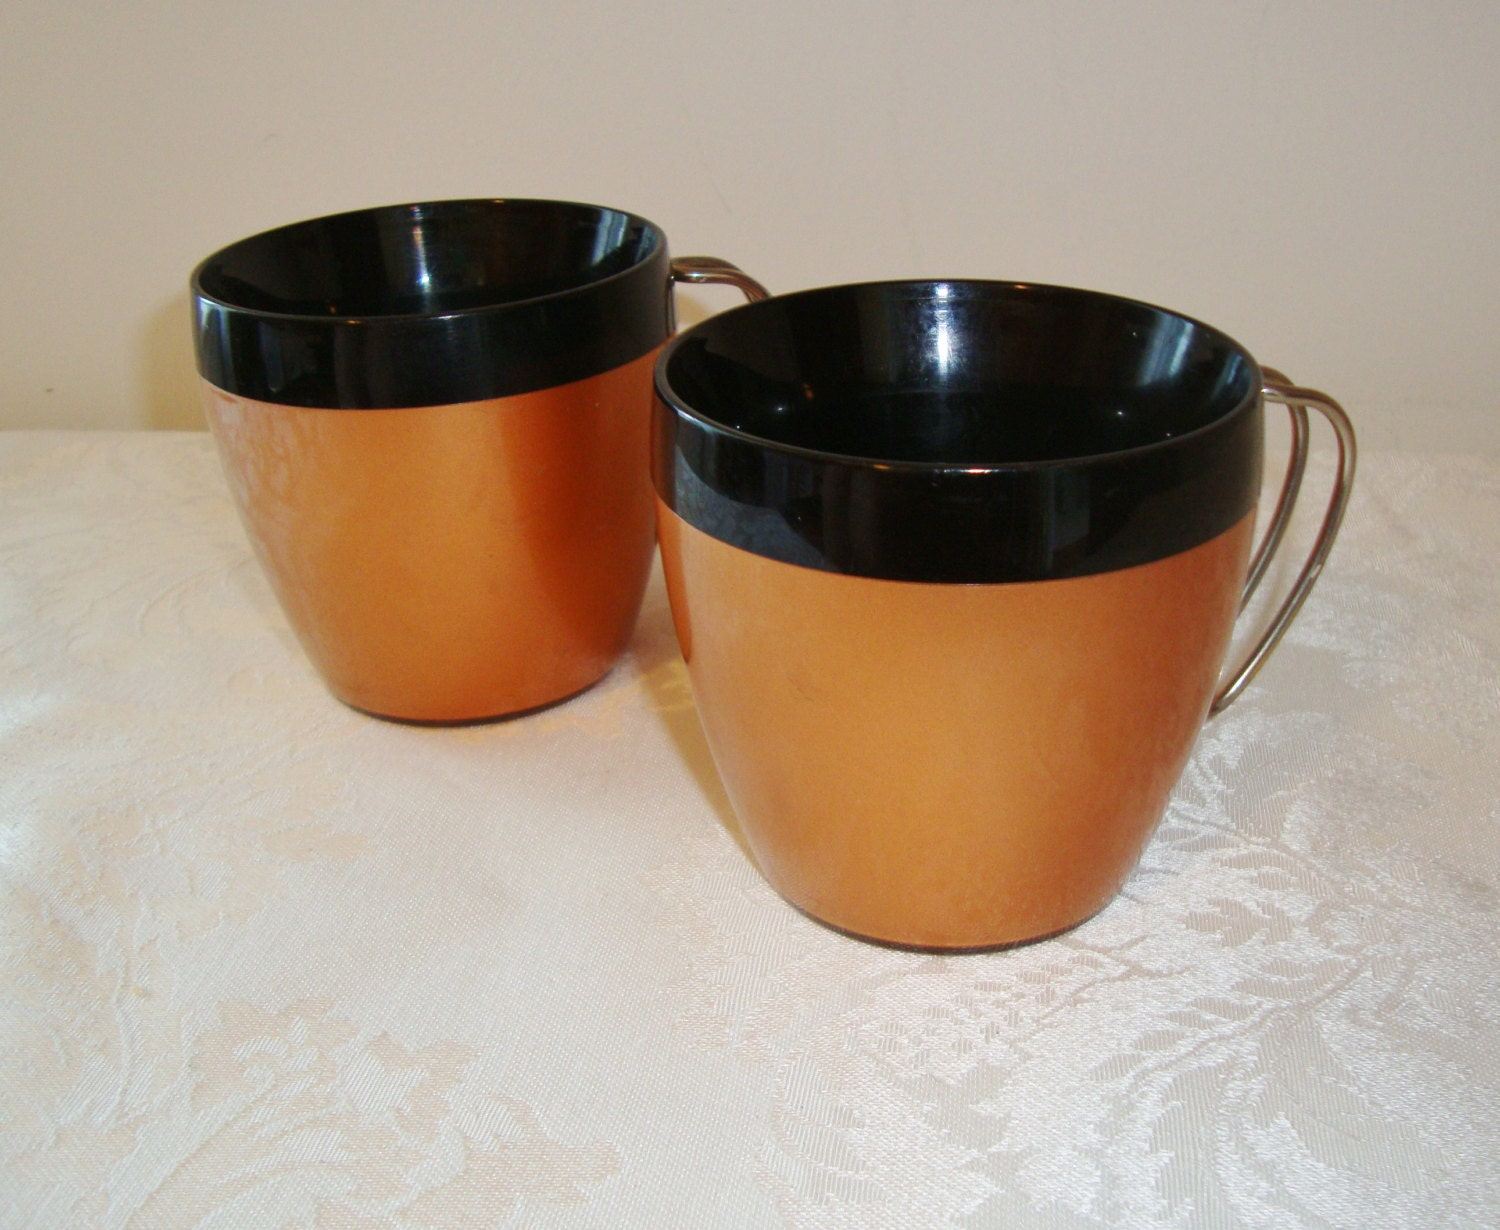 Vintage Nfc Thermal Insulated Mugs Copper And Black Set Of 2